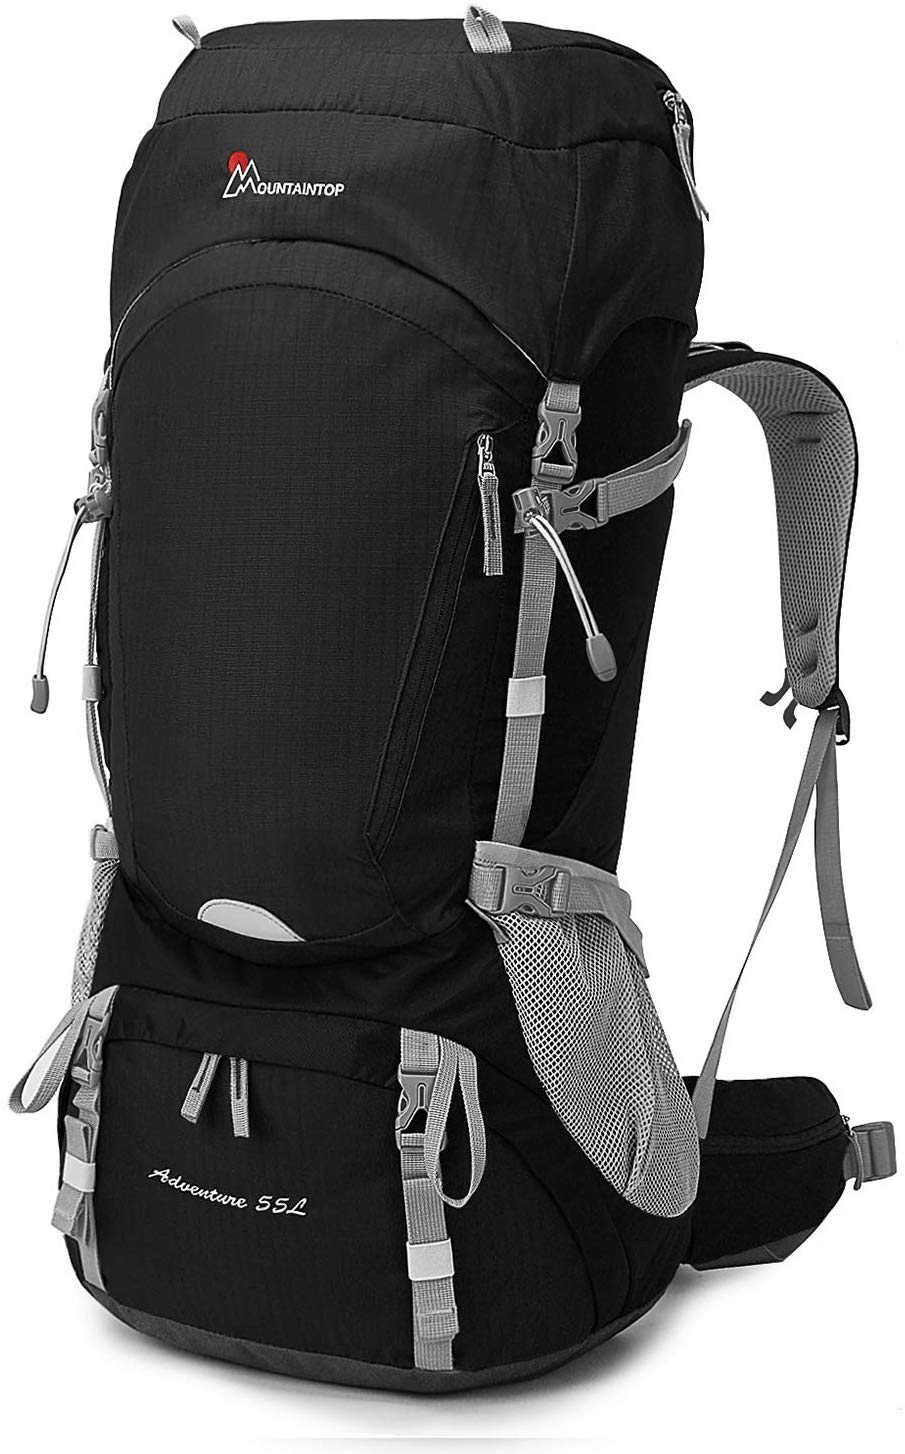 Mountaintop 65L Internal Frame Backpack with Rain Cover